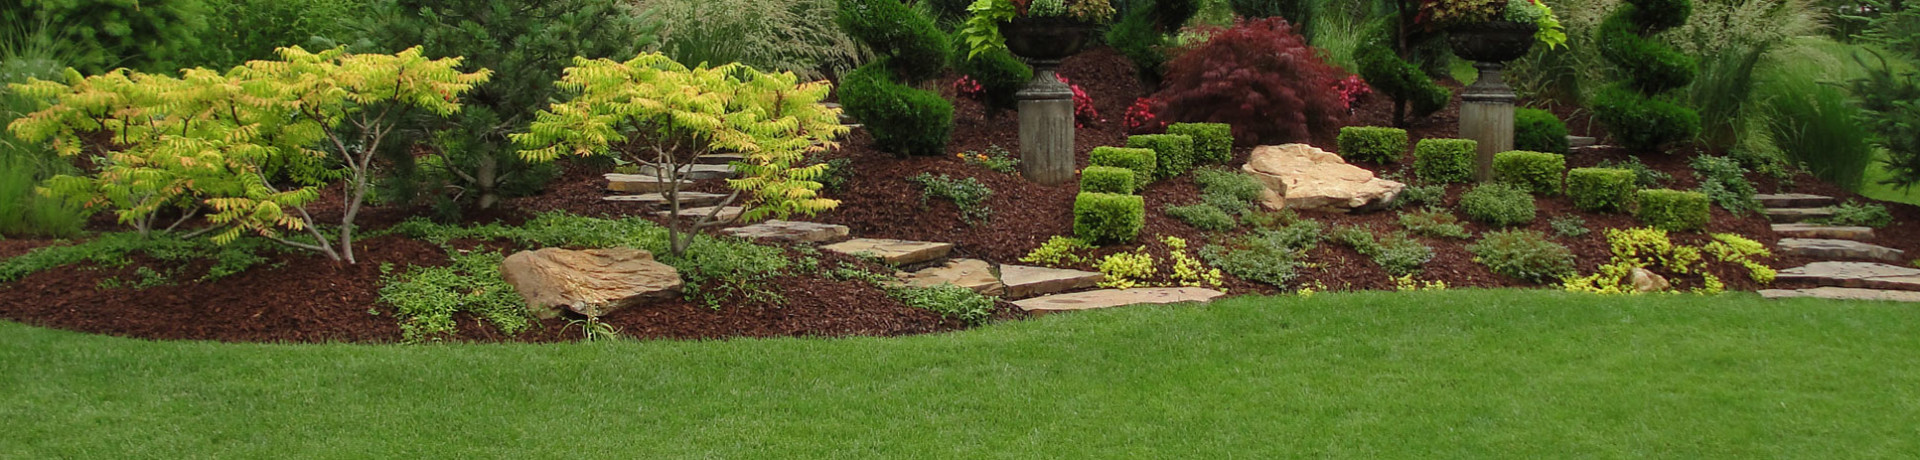 Home sunrise scapessunrise scapes lanscape services inc for Home landscaping services